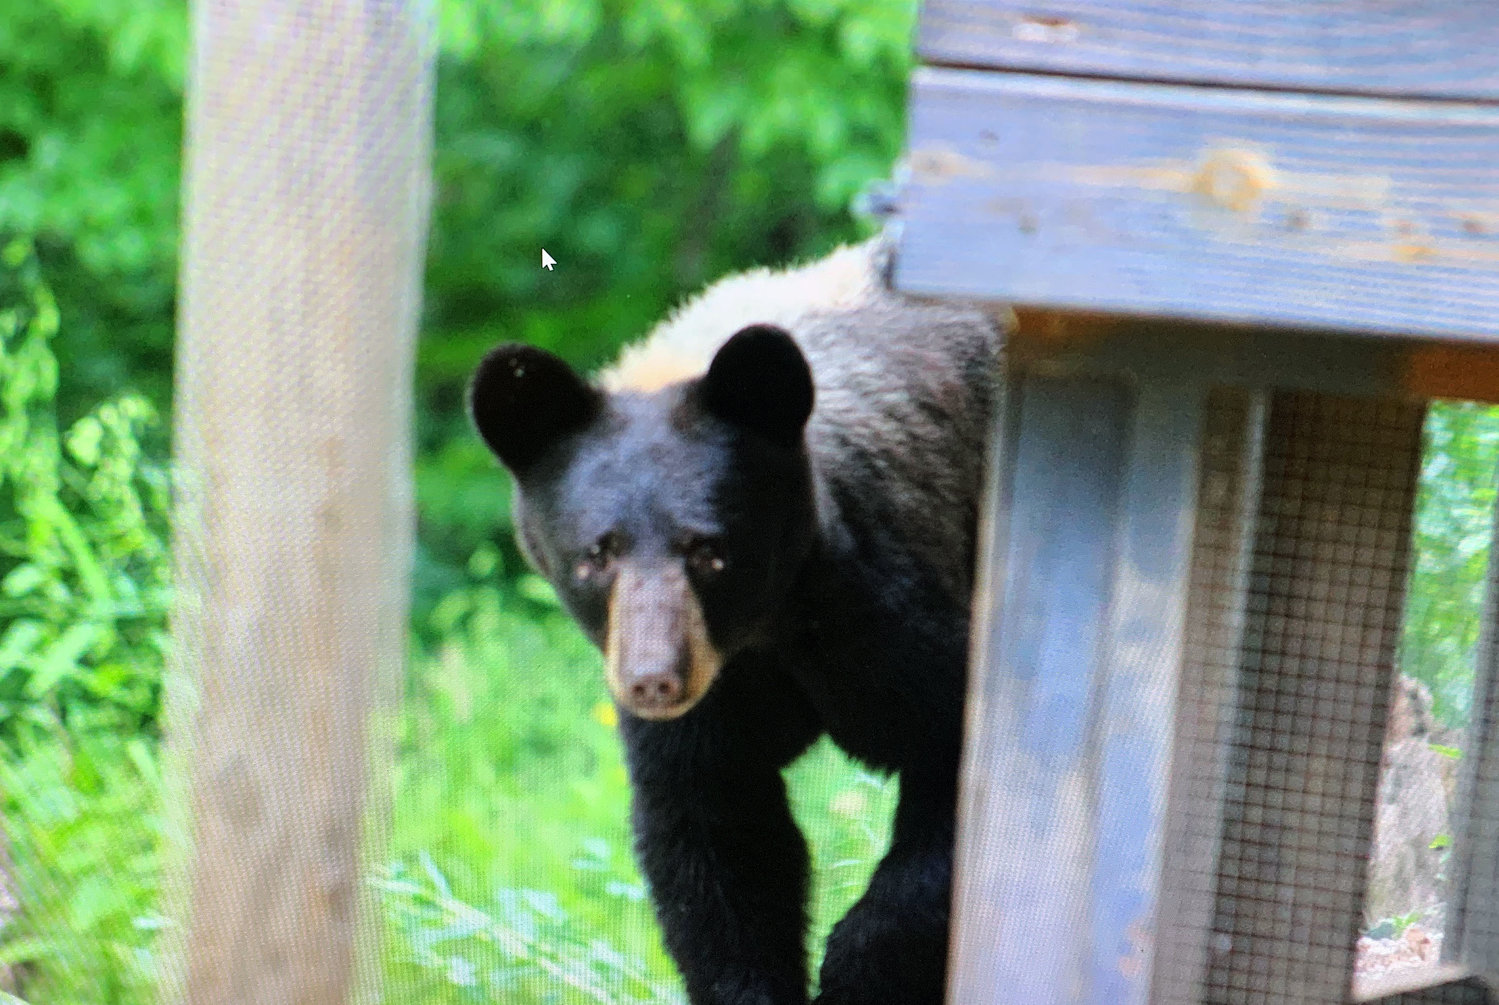 Steve Deaton of Vienna, got several good photos of this young male bear that he first discovered had killed some of his chickens.